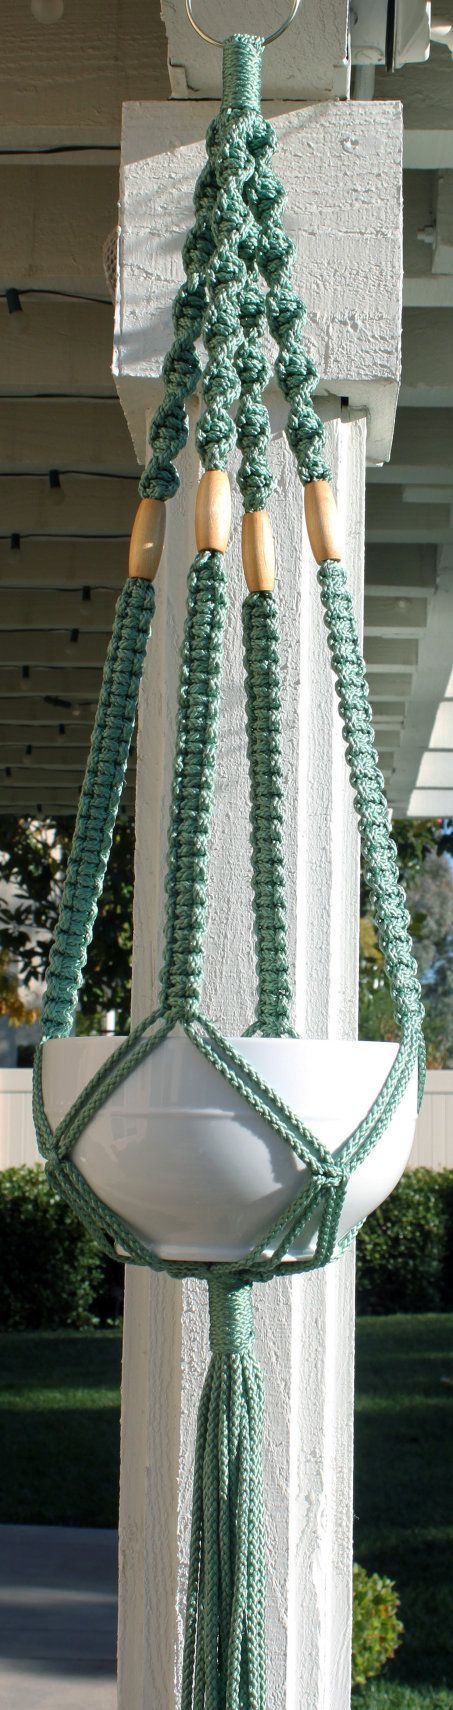 Handmade Blue Green Teal Macrame Plant Hanger Holder with Wood Beads.  I did several of these before I was 13.  I really enjoyed making them.  A lady across the street taught me how, and in a 6th grade home ec class we also made one.